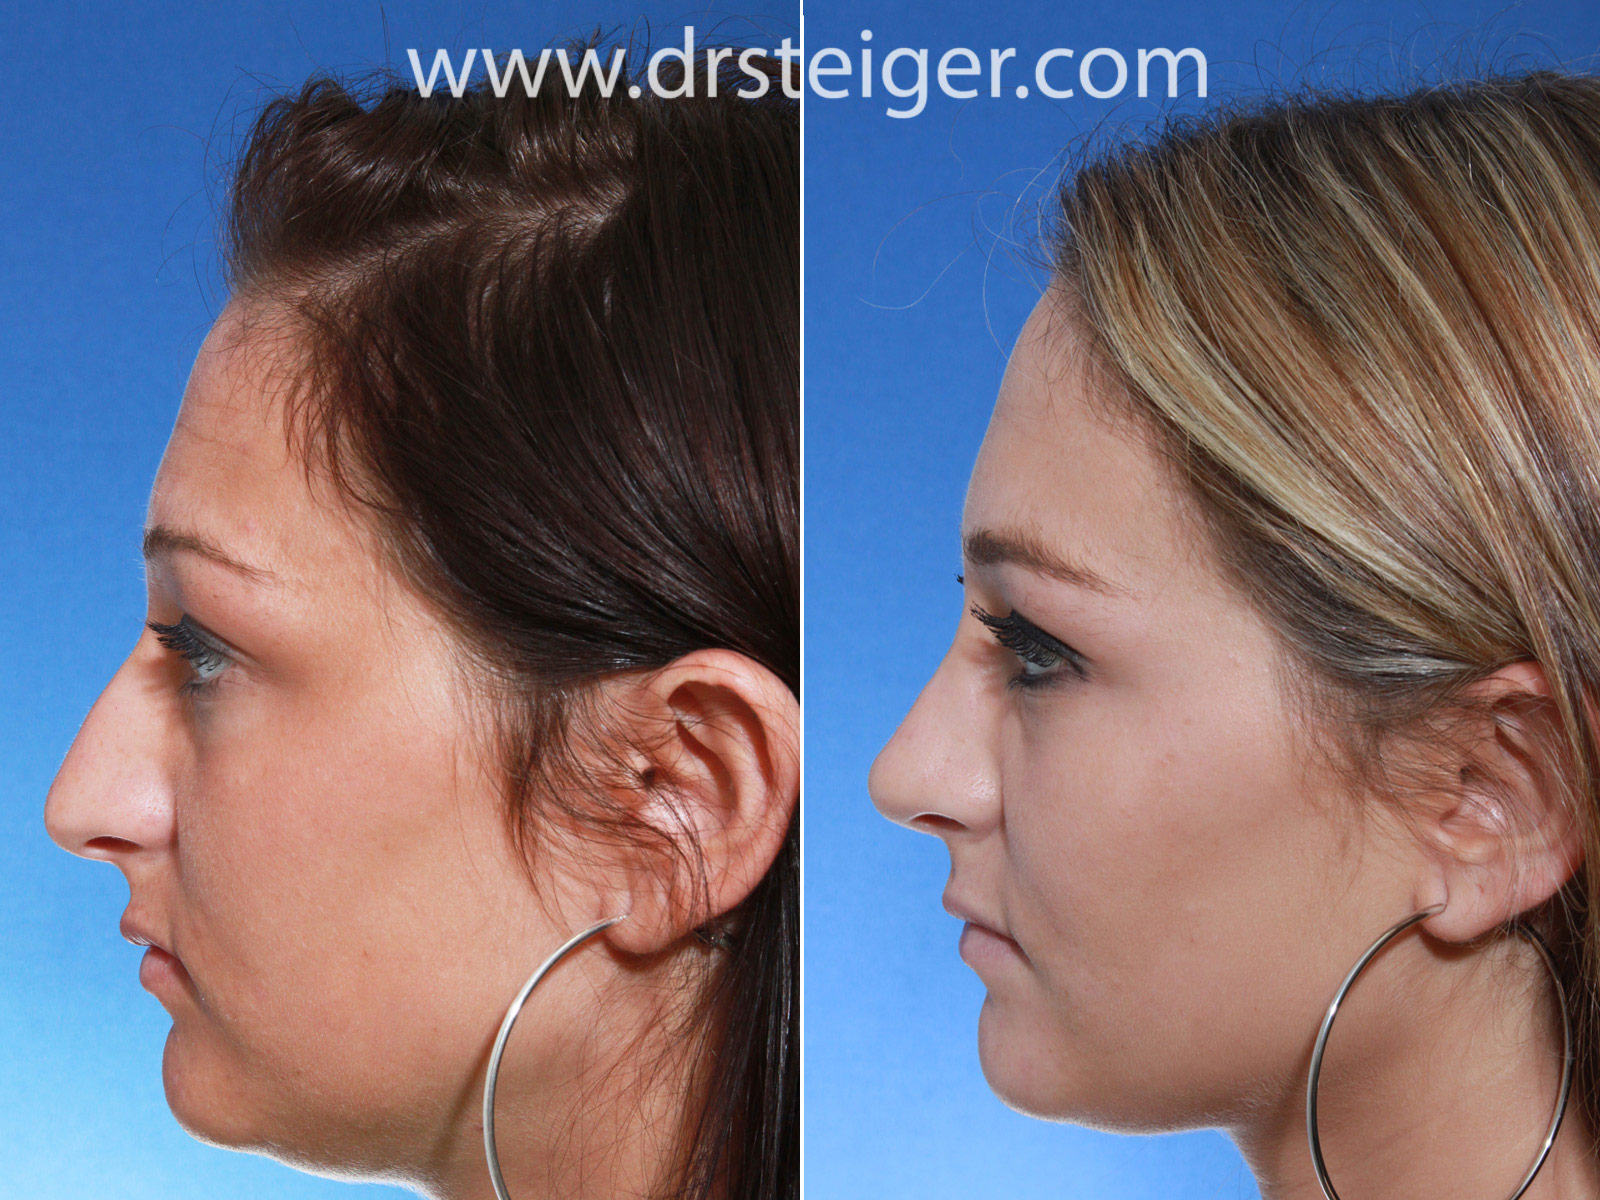 Rhinoplasty before and after wide nose